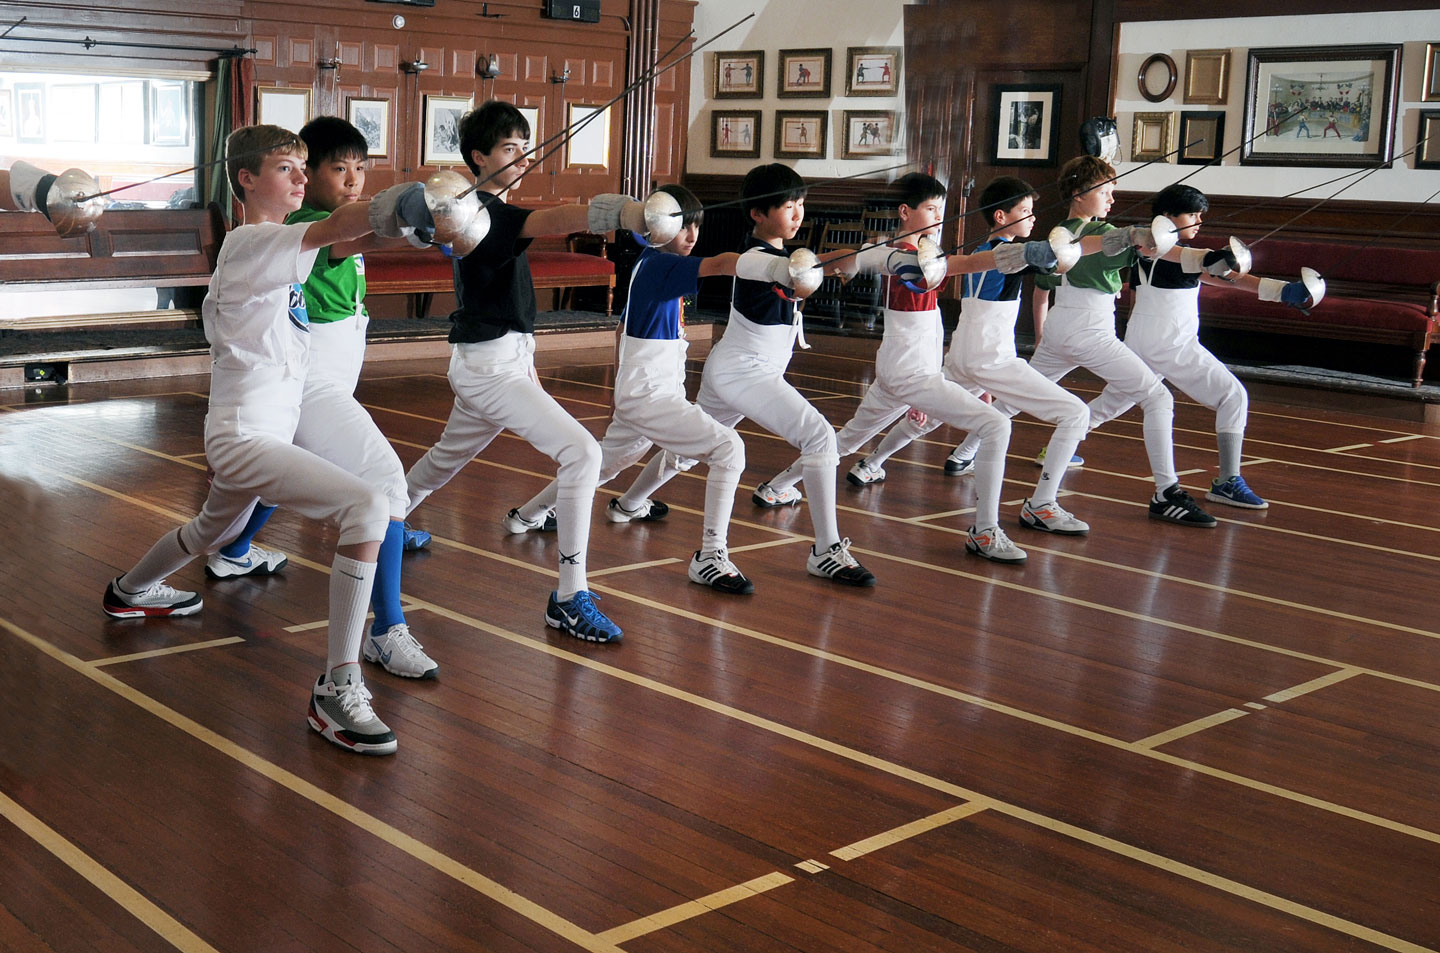 Footwork drills at the fencing club